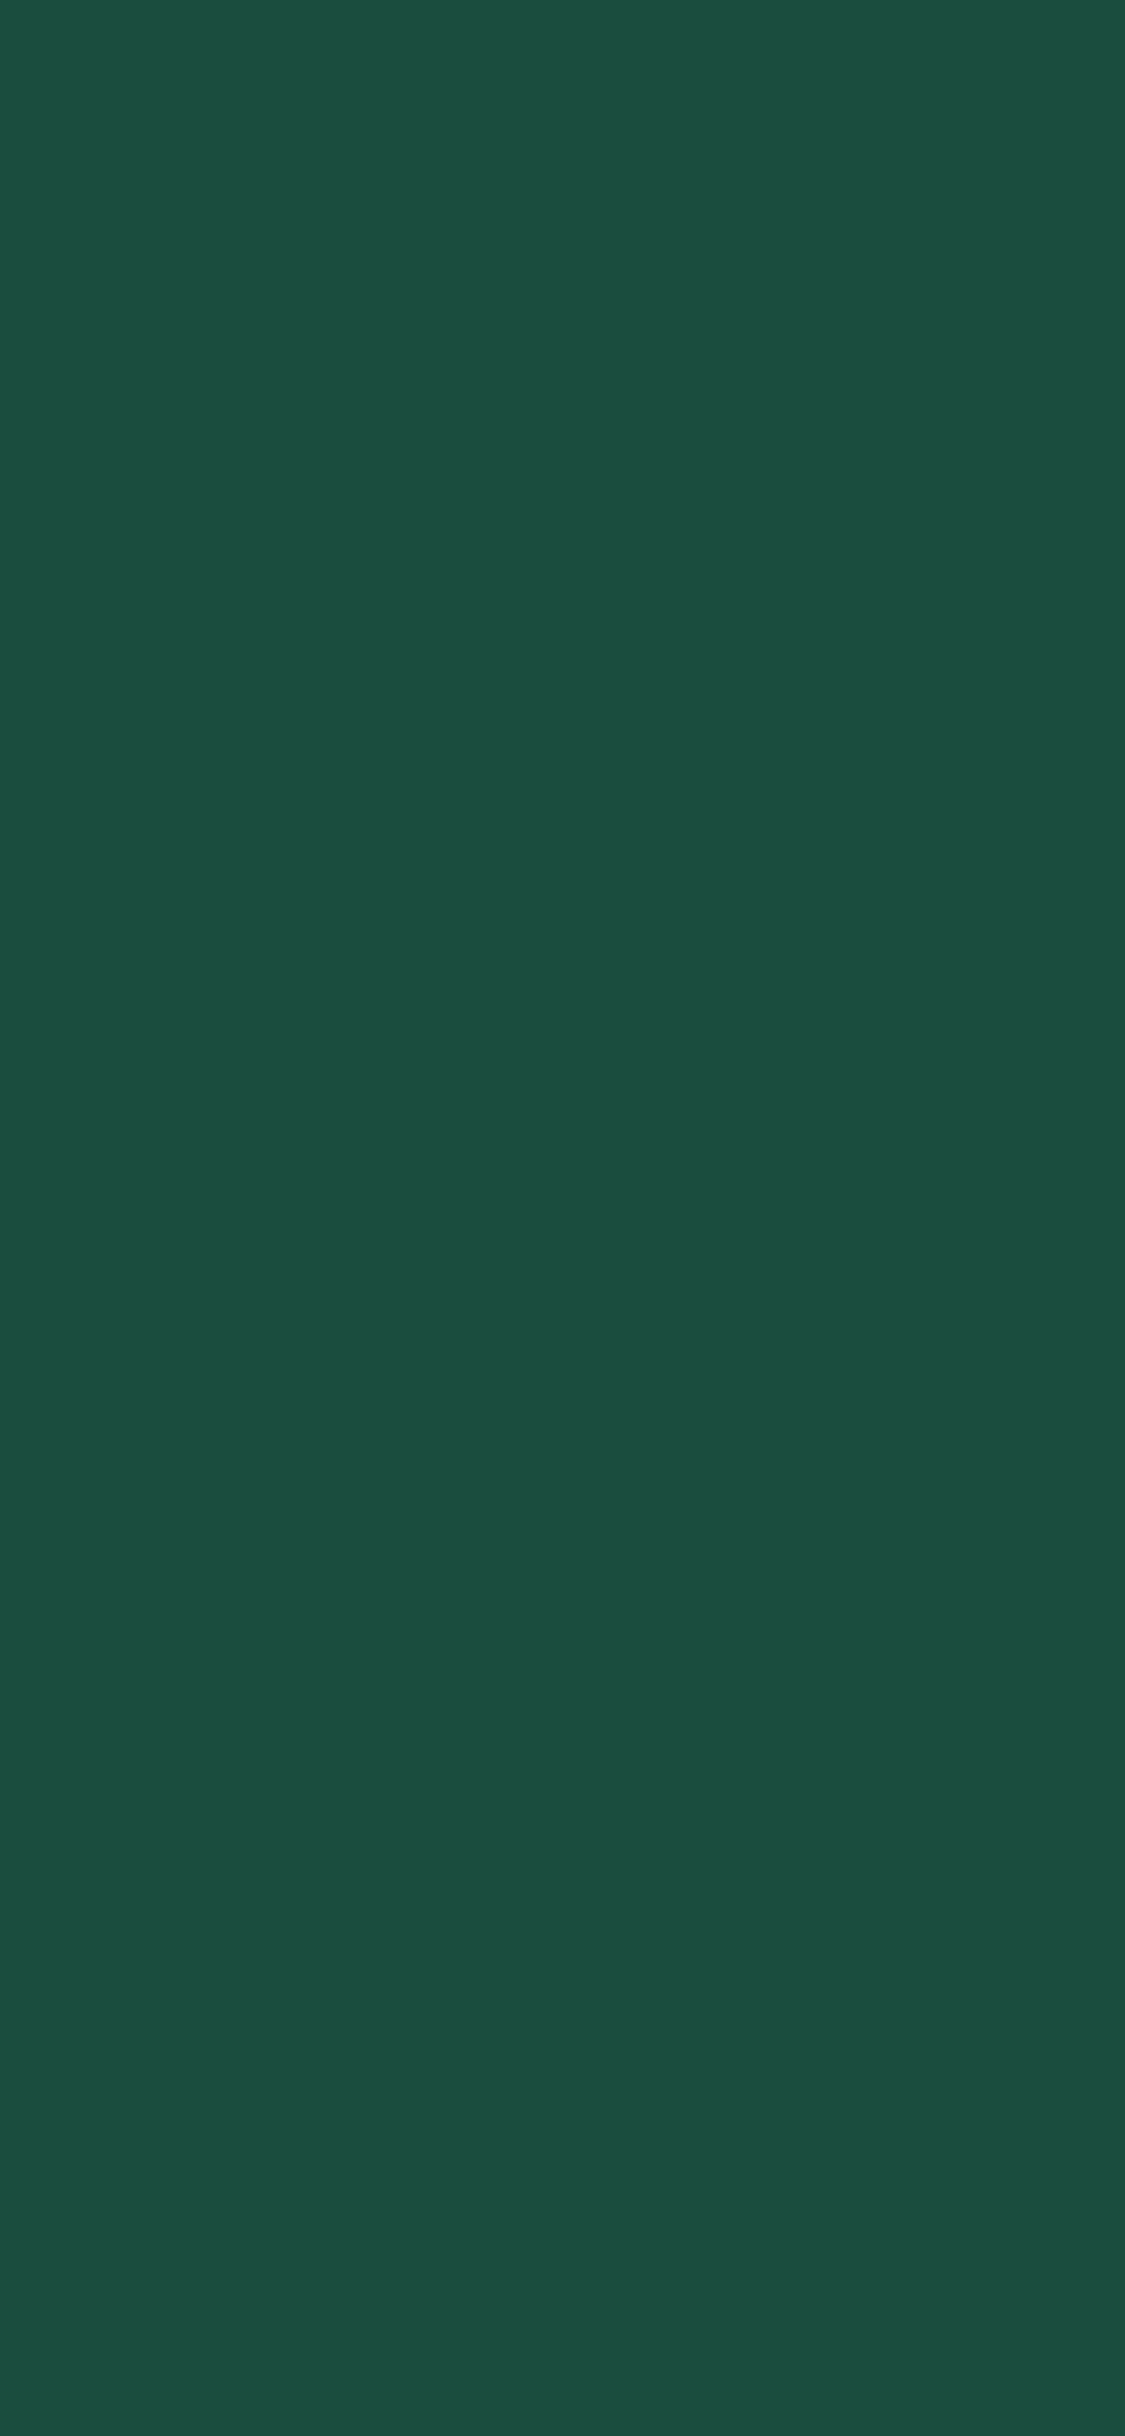 1125x2436 Brunswick Green Solid Color Background